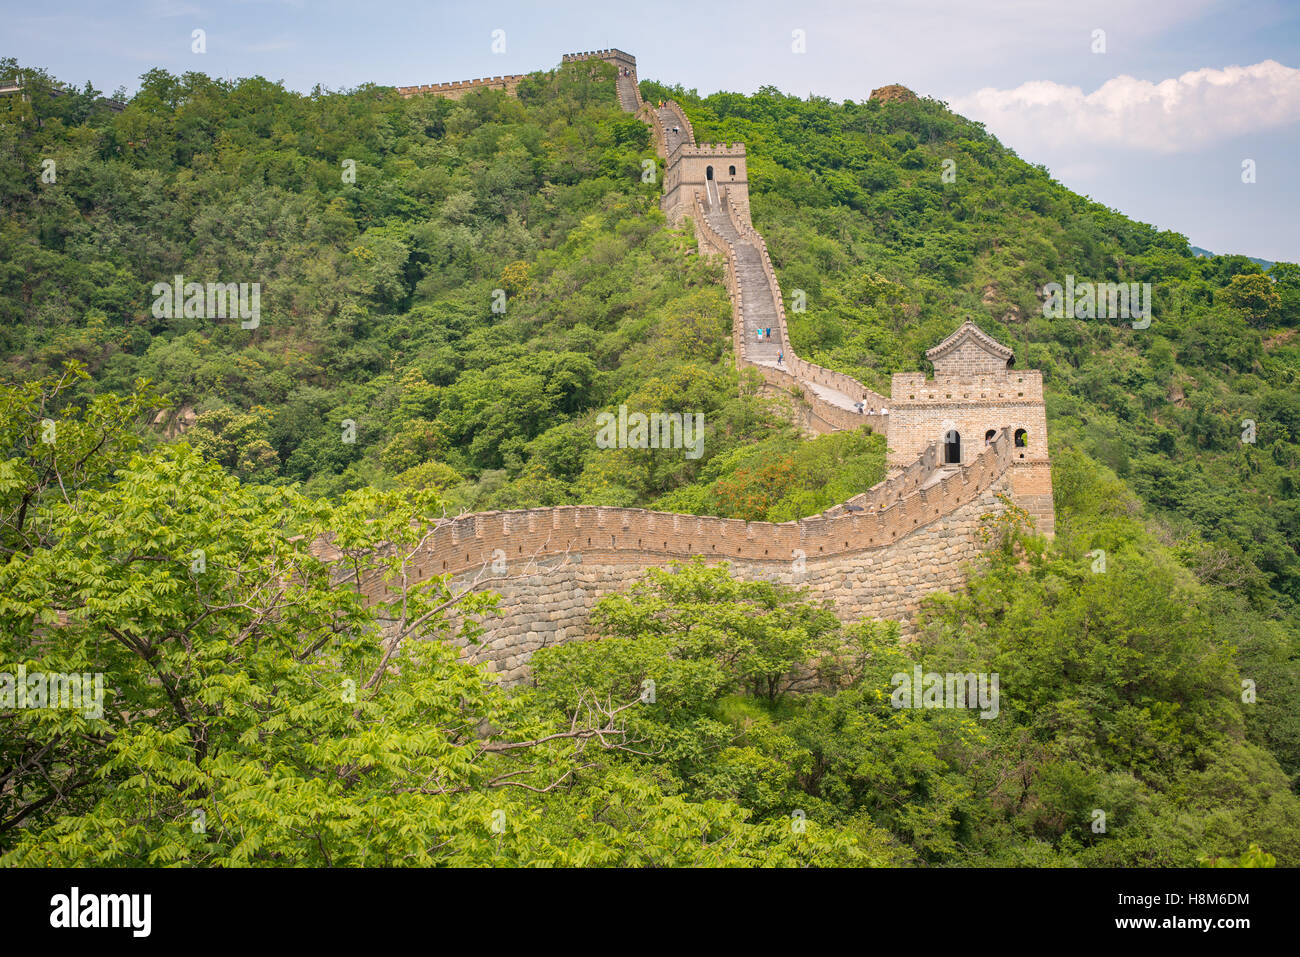 Mutianyu, China - Landscape view of the Great Wall of China. The wall stretches over 6,000 mountainous kilometers - Stock Image